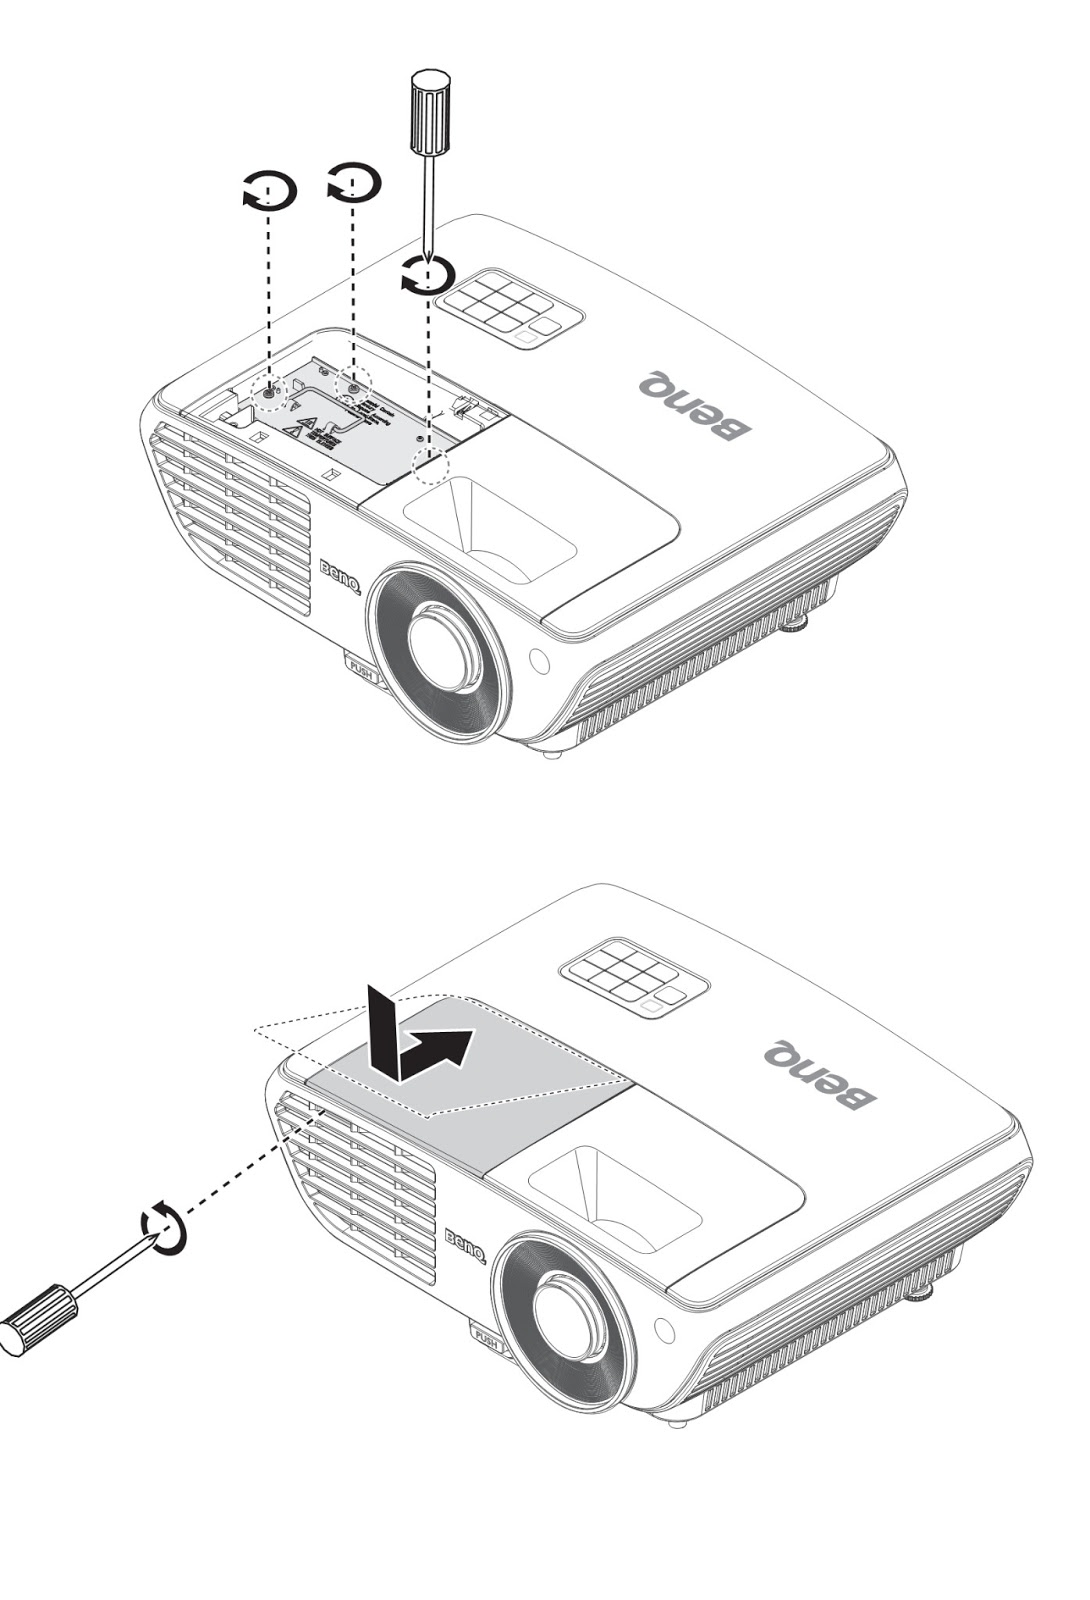 benq ep5920 projector - lamp information